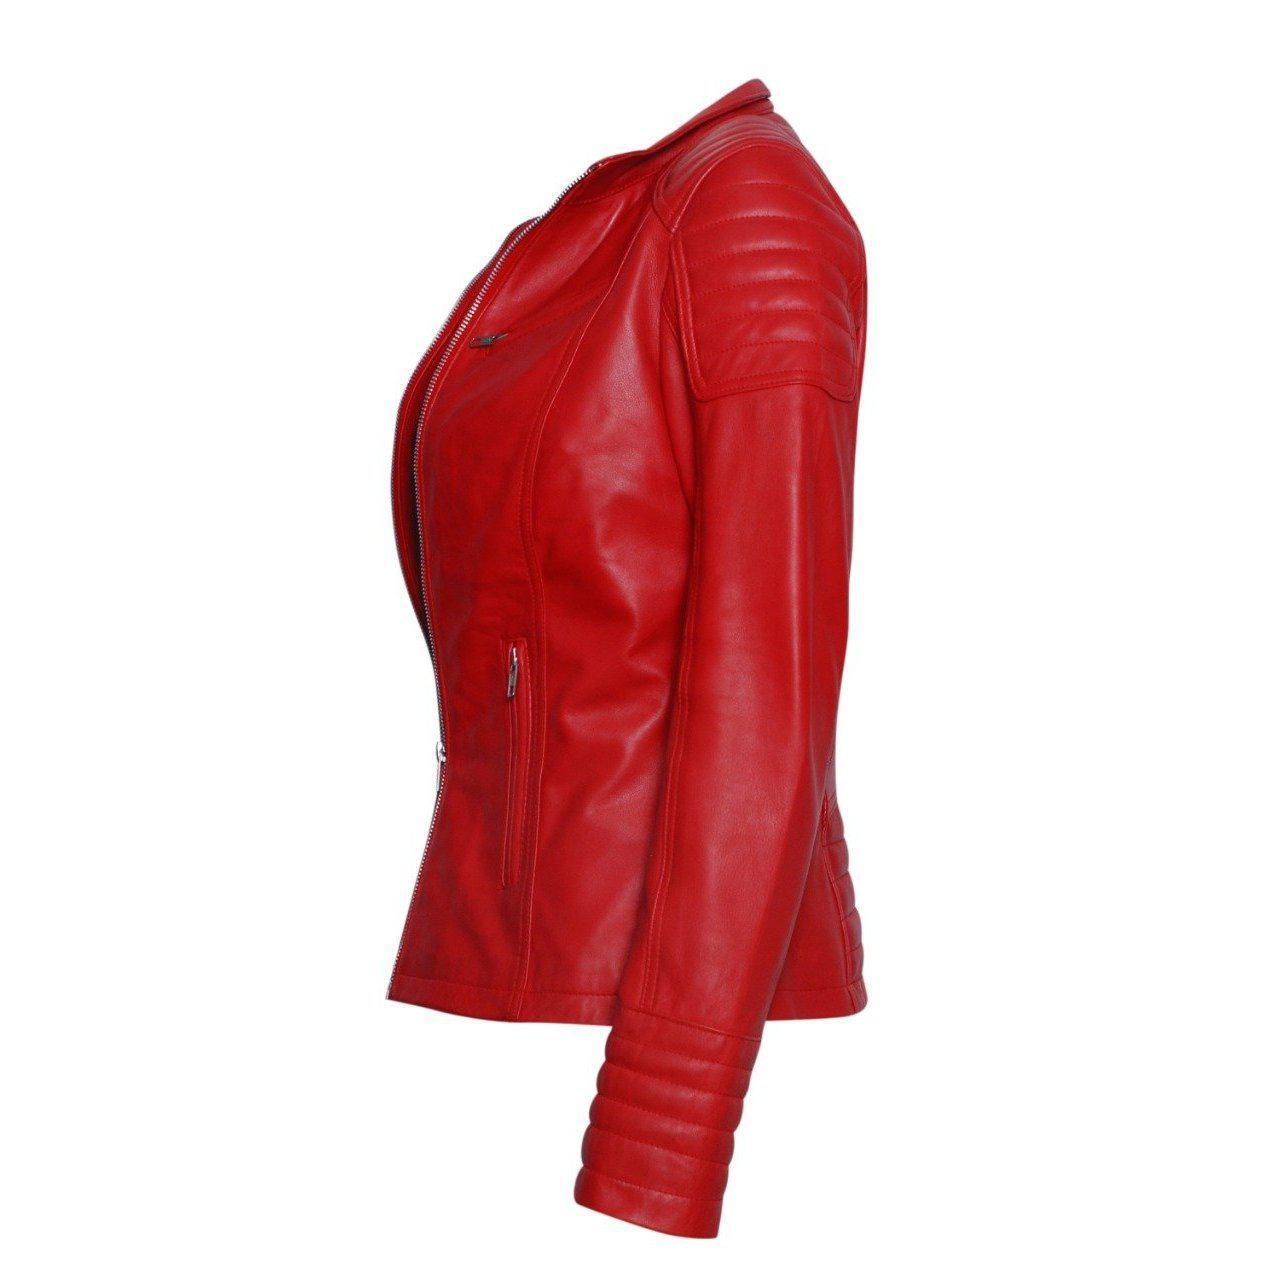 Stylish Red Leather Jacket for Women with Long Sleeves leather jacket women - Leather Jacket